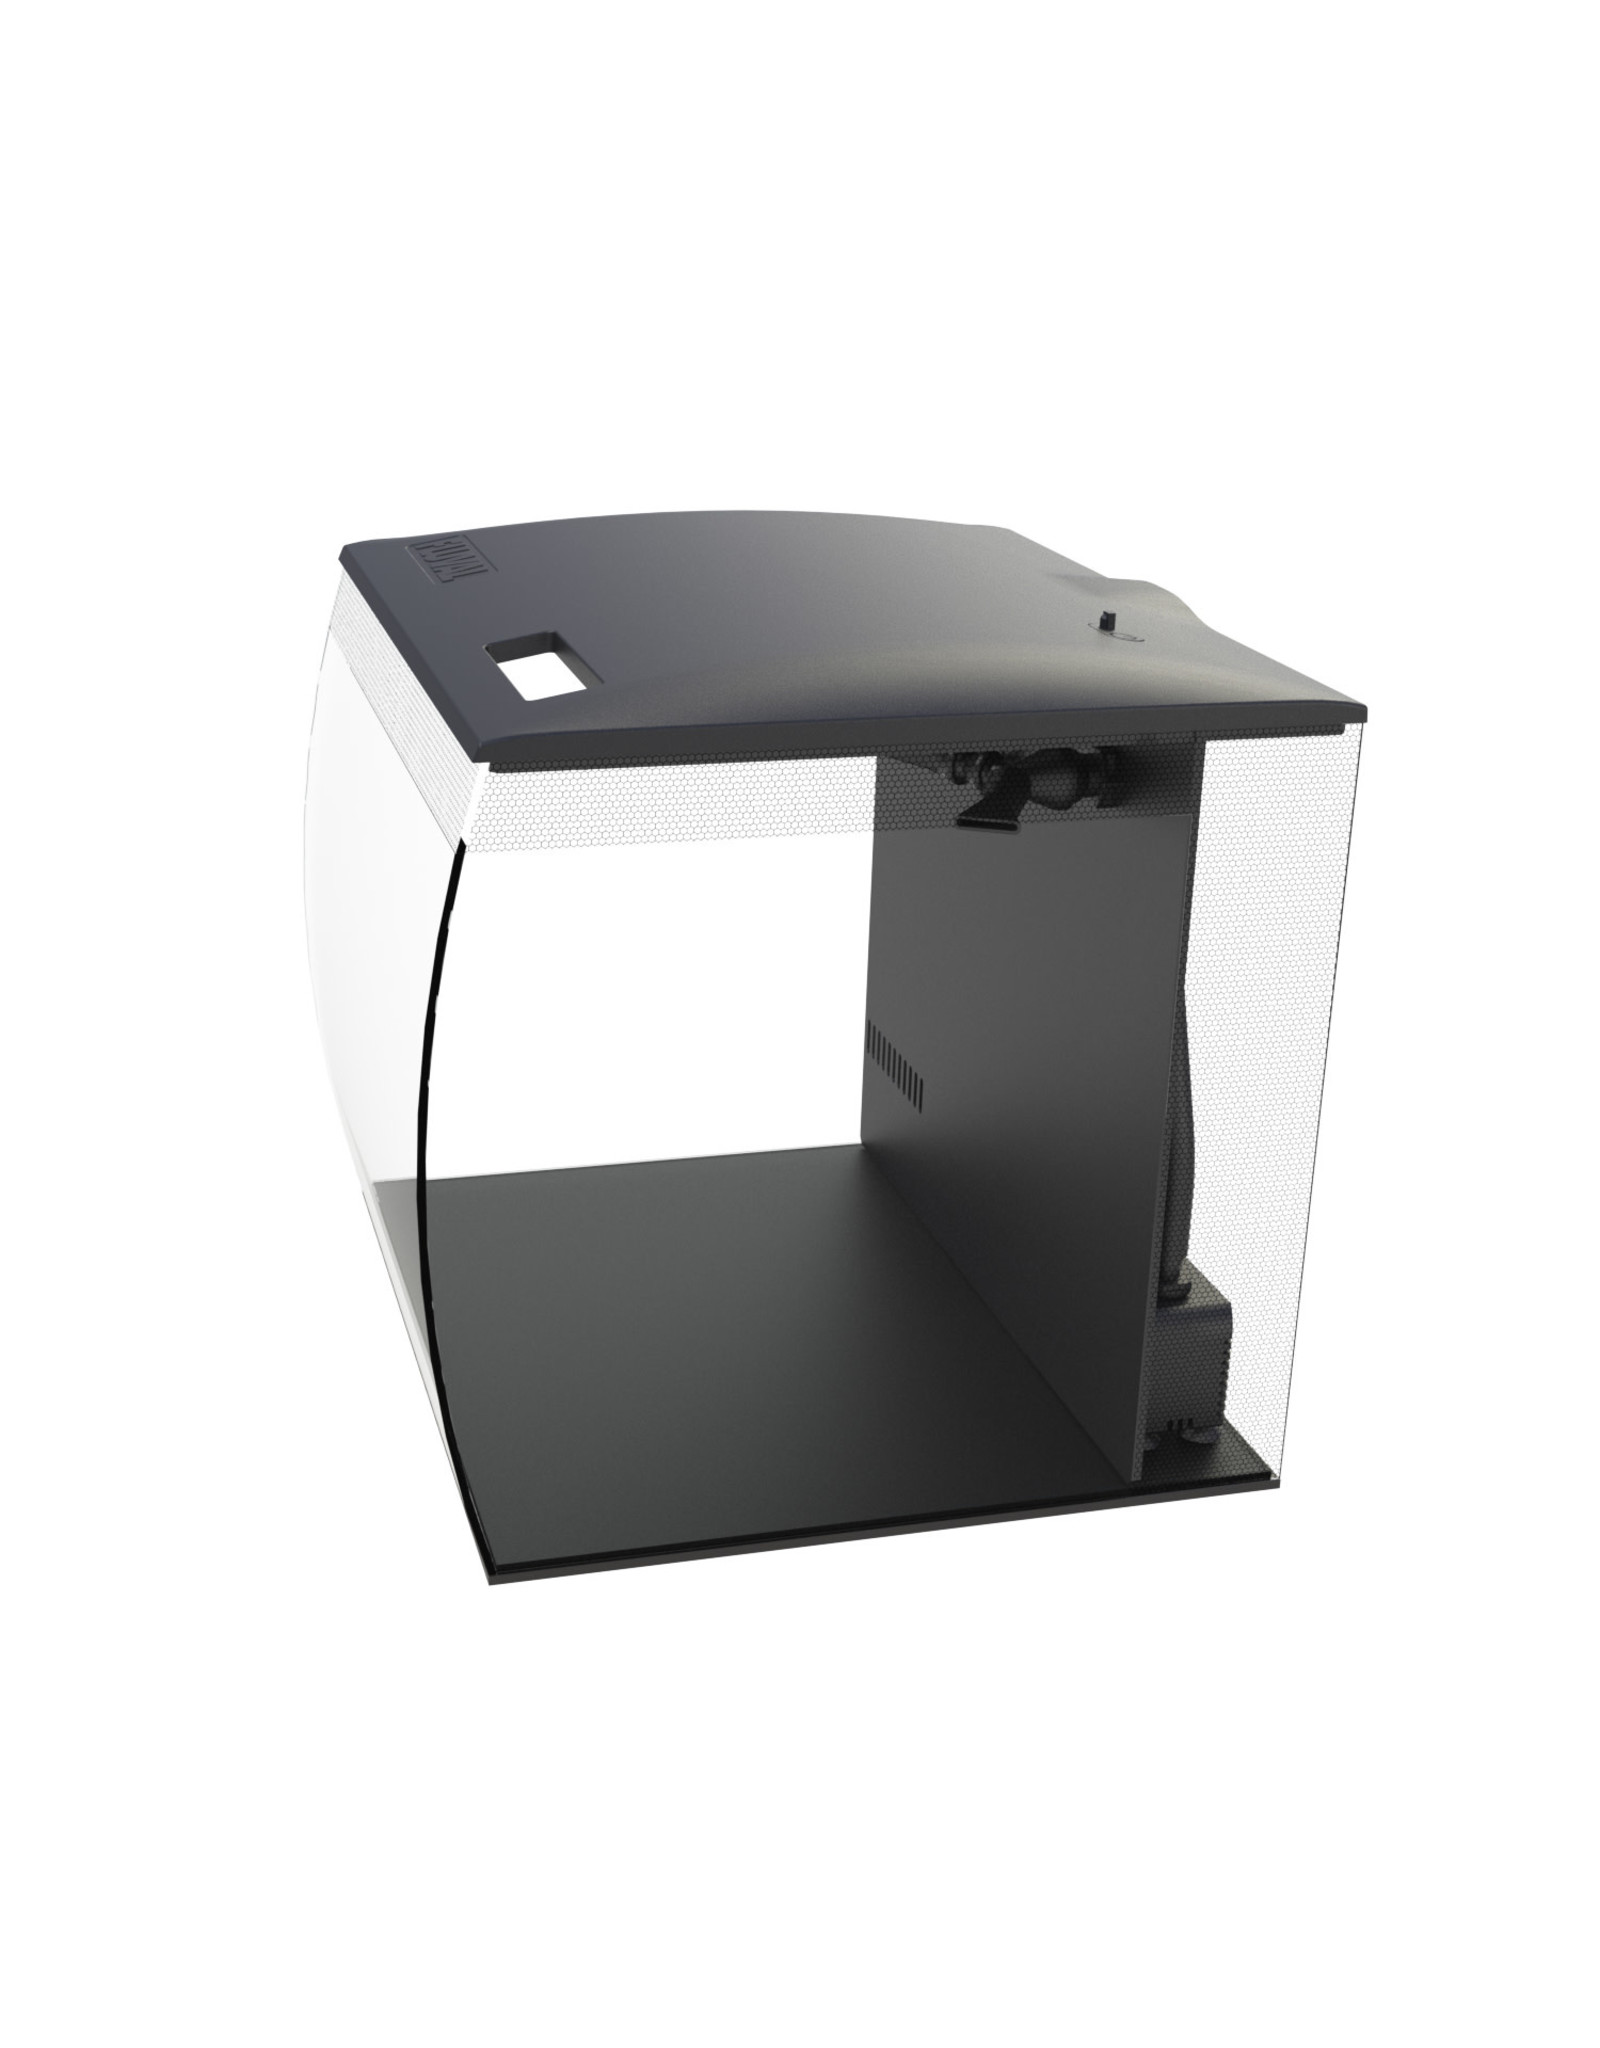 Fluval Fluval FLEX Aquarium Kit - 34 L (9 US gal)